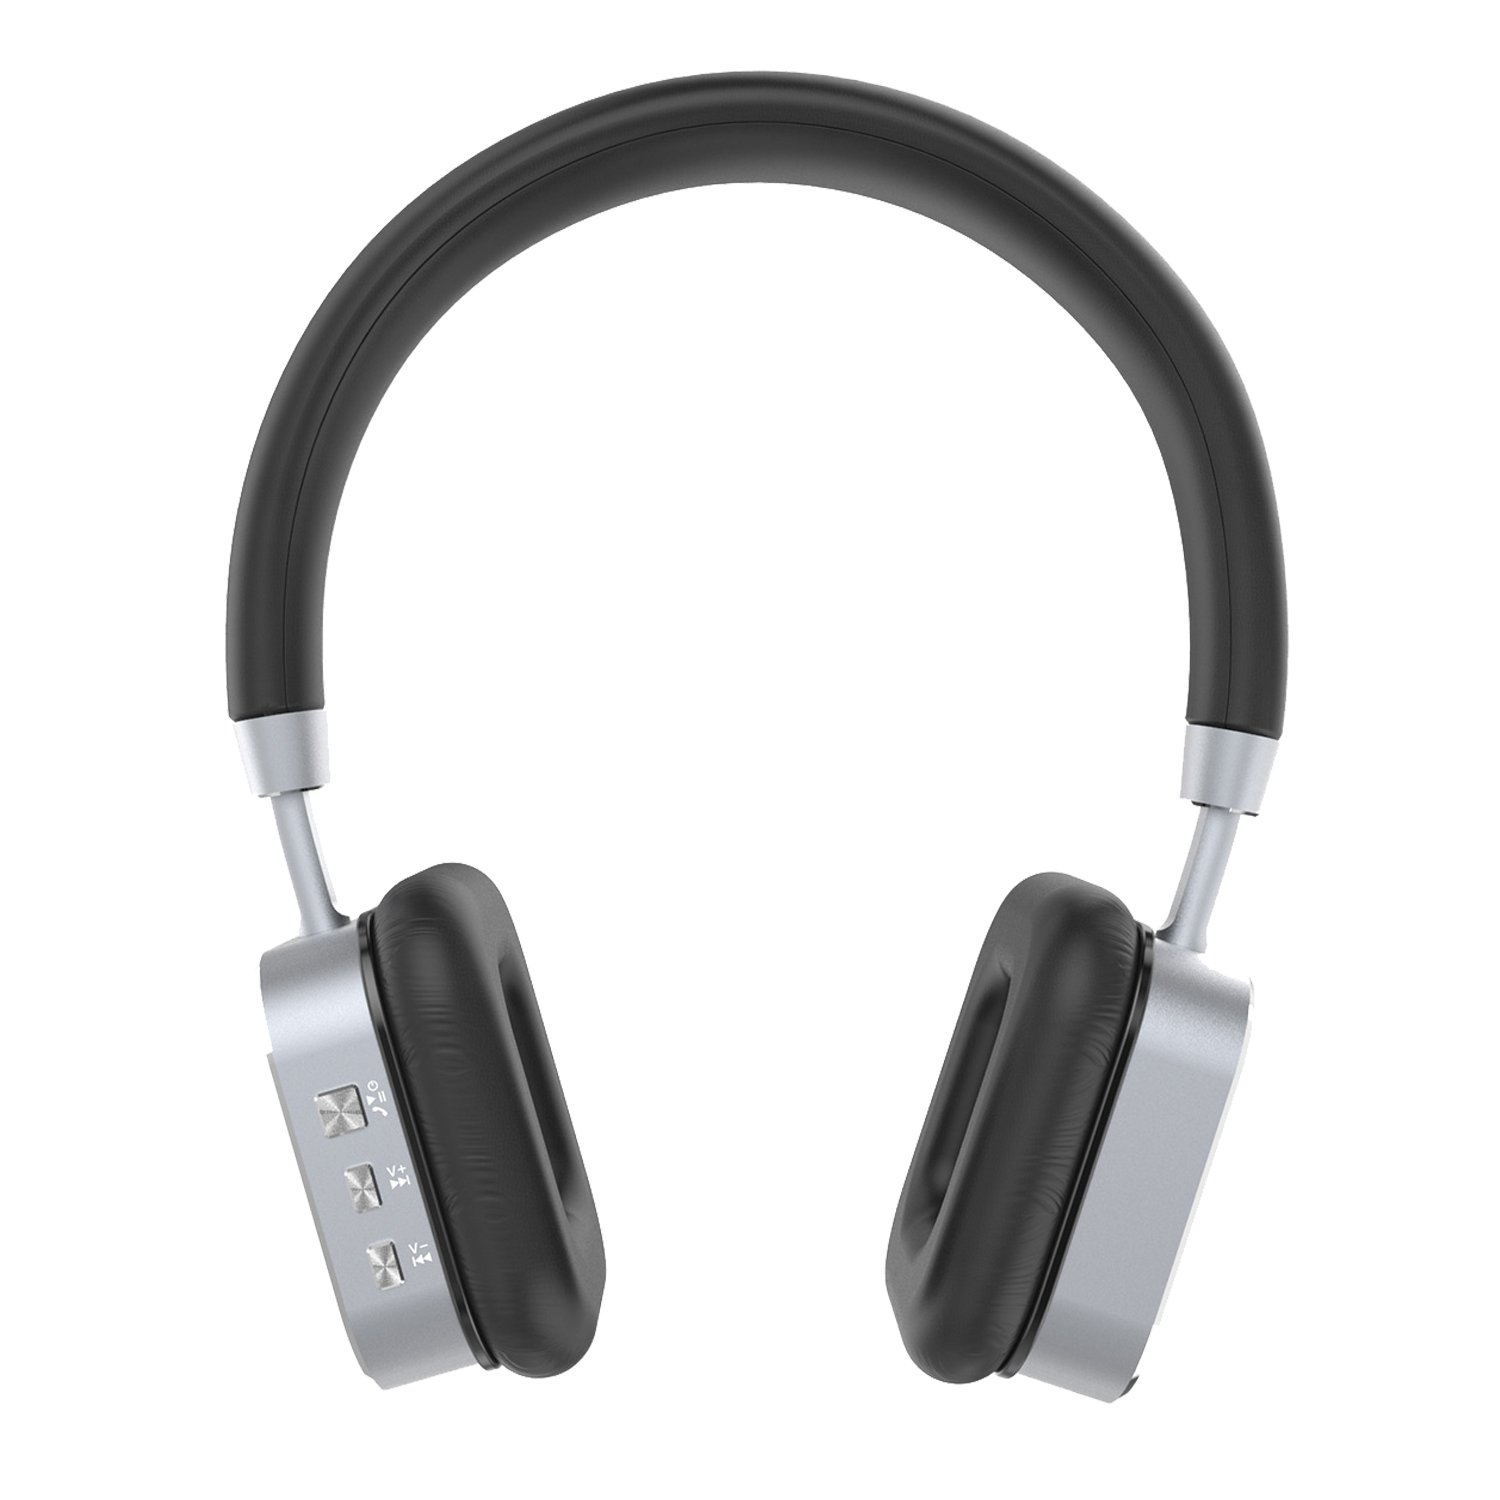 HOCO HPW01 Wireless Over-ear Stereo Bass Bluetooth 4.1 Sports Headphone (Silver)